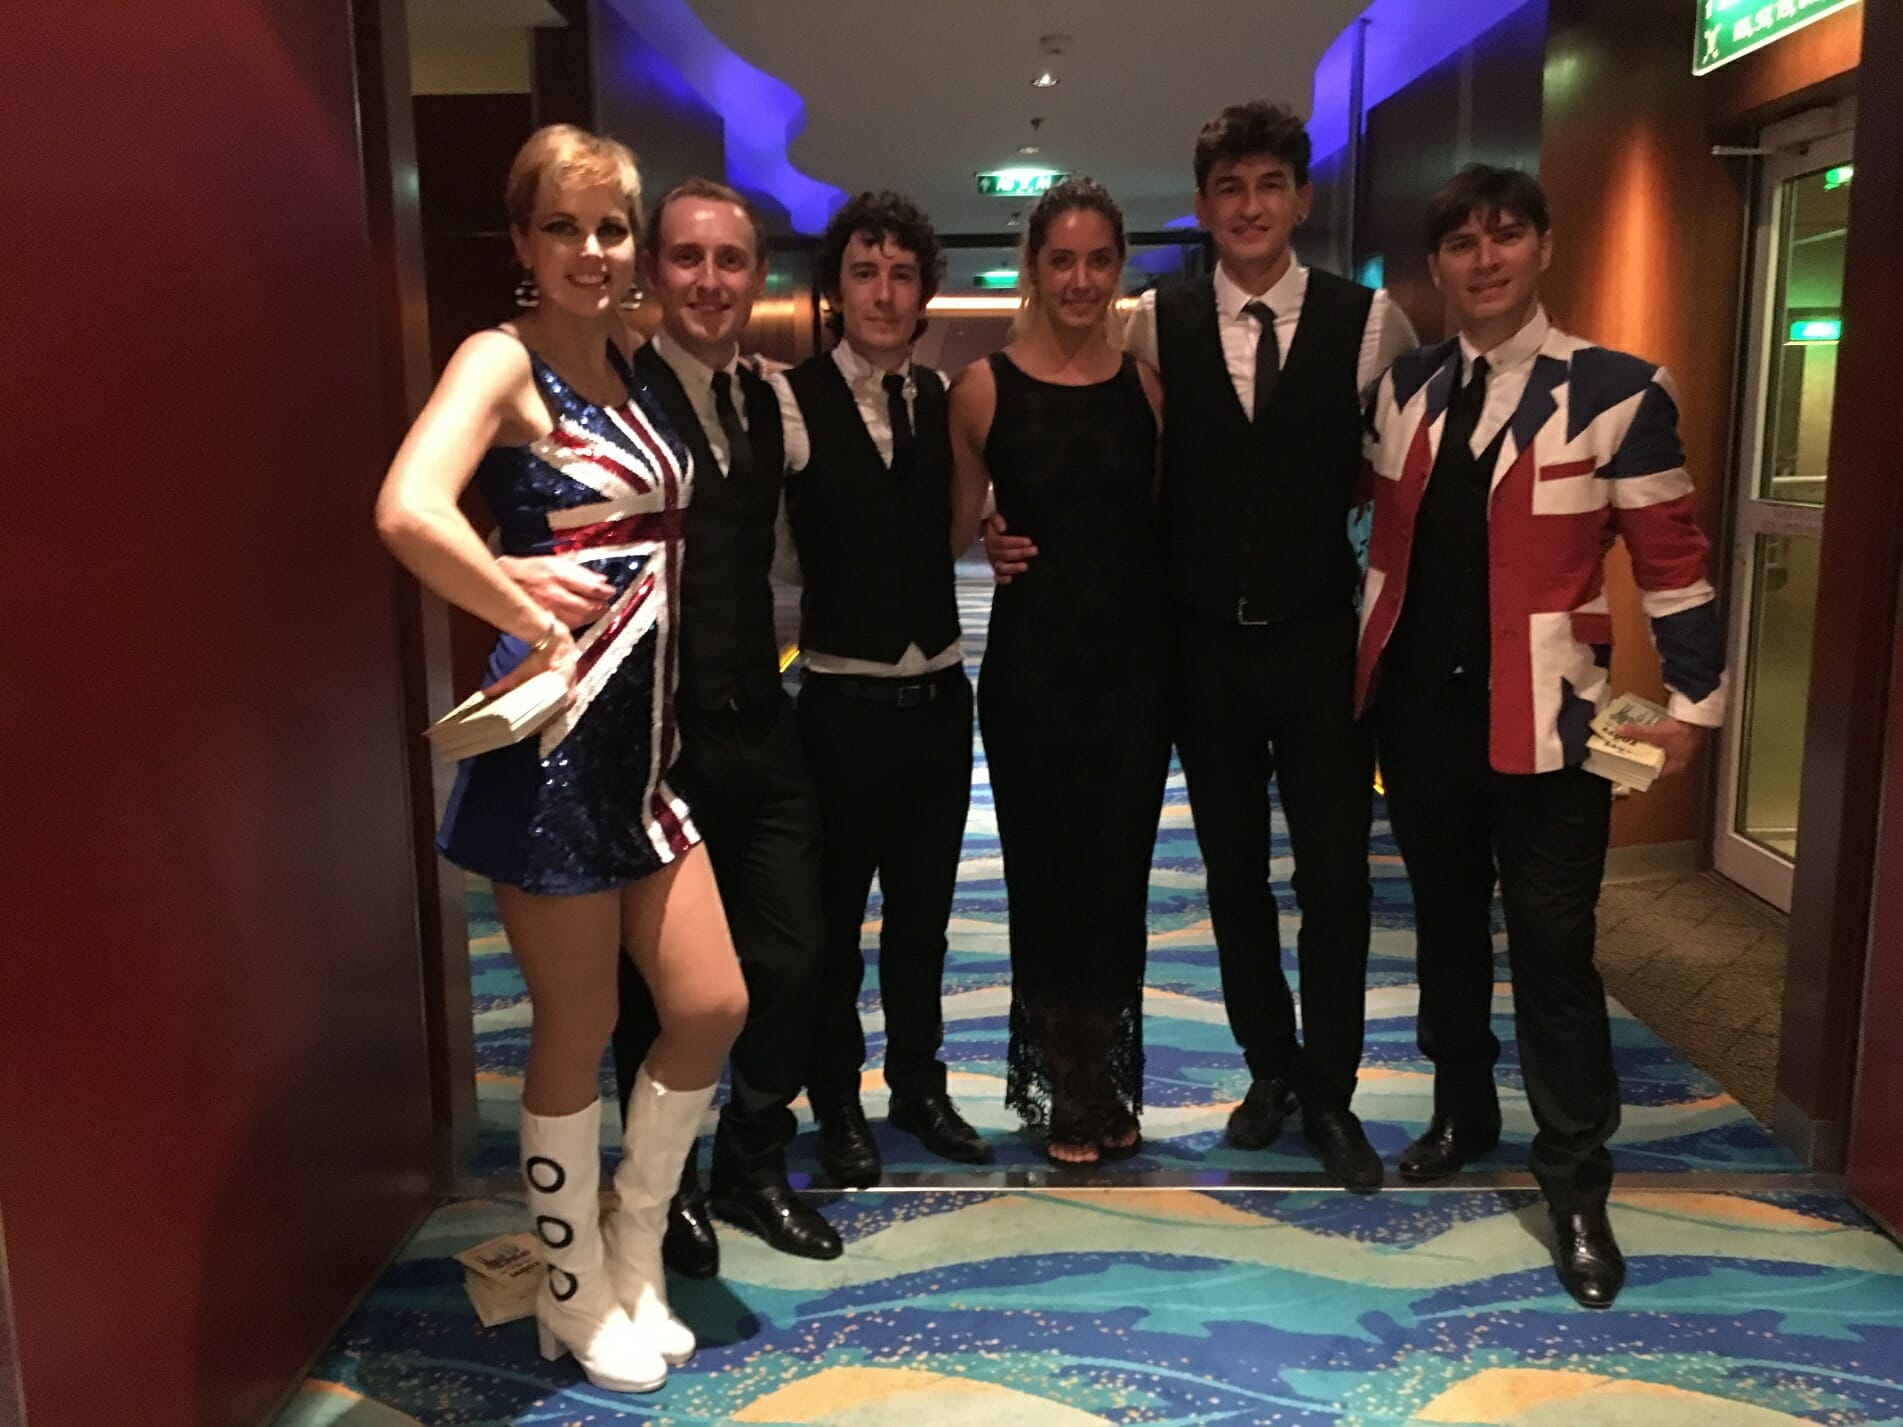 The Zoots, Jewel of The Seas, Sixties band, 1960s band, 60s band, Tribute band, sixties tribute band,